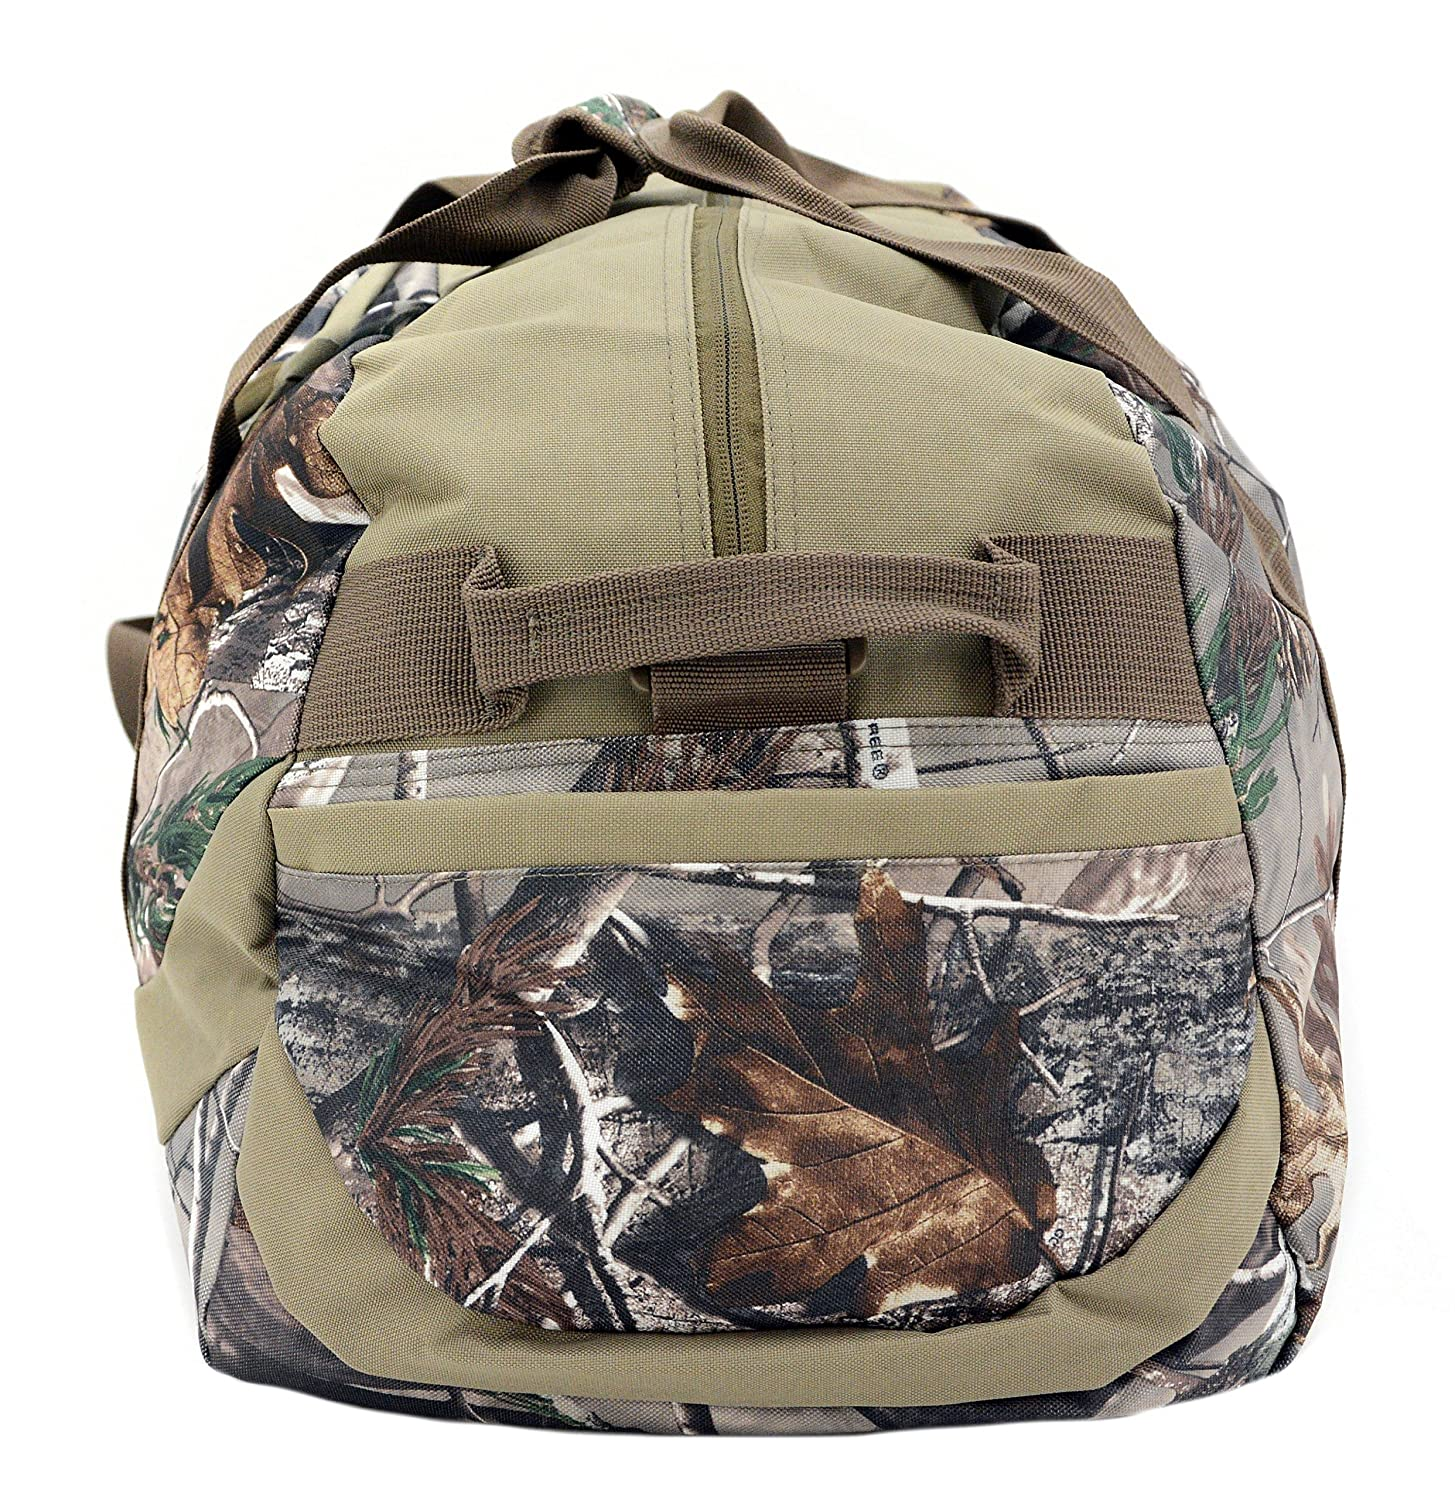 6e5128f057 Official Realtree AP Camouflage Camo Trim - Large Duffle Bag - Sale On Now!   Amazon.co.uk  Clothing